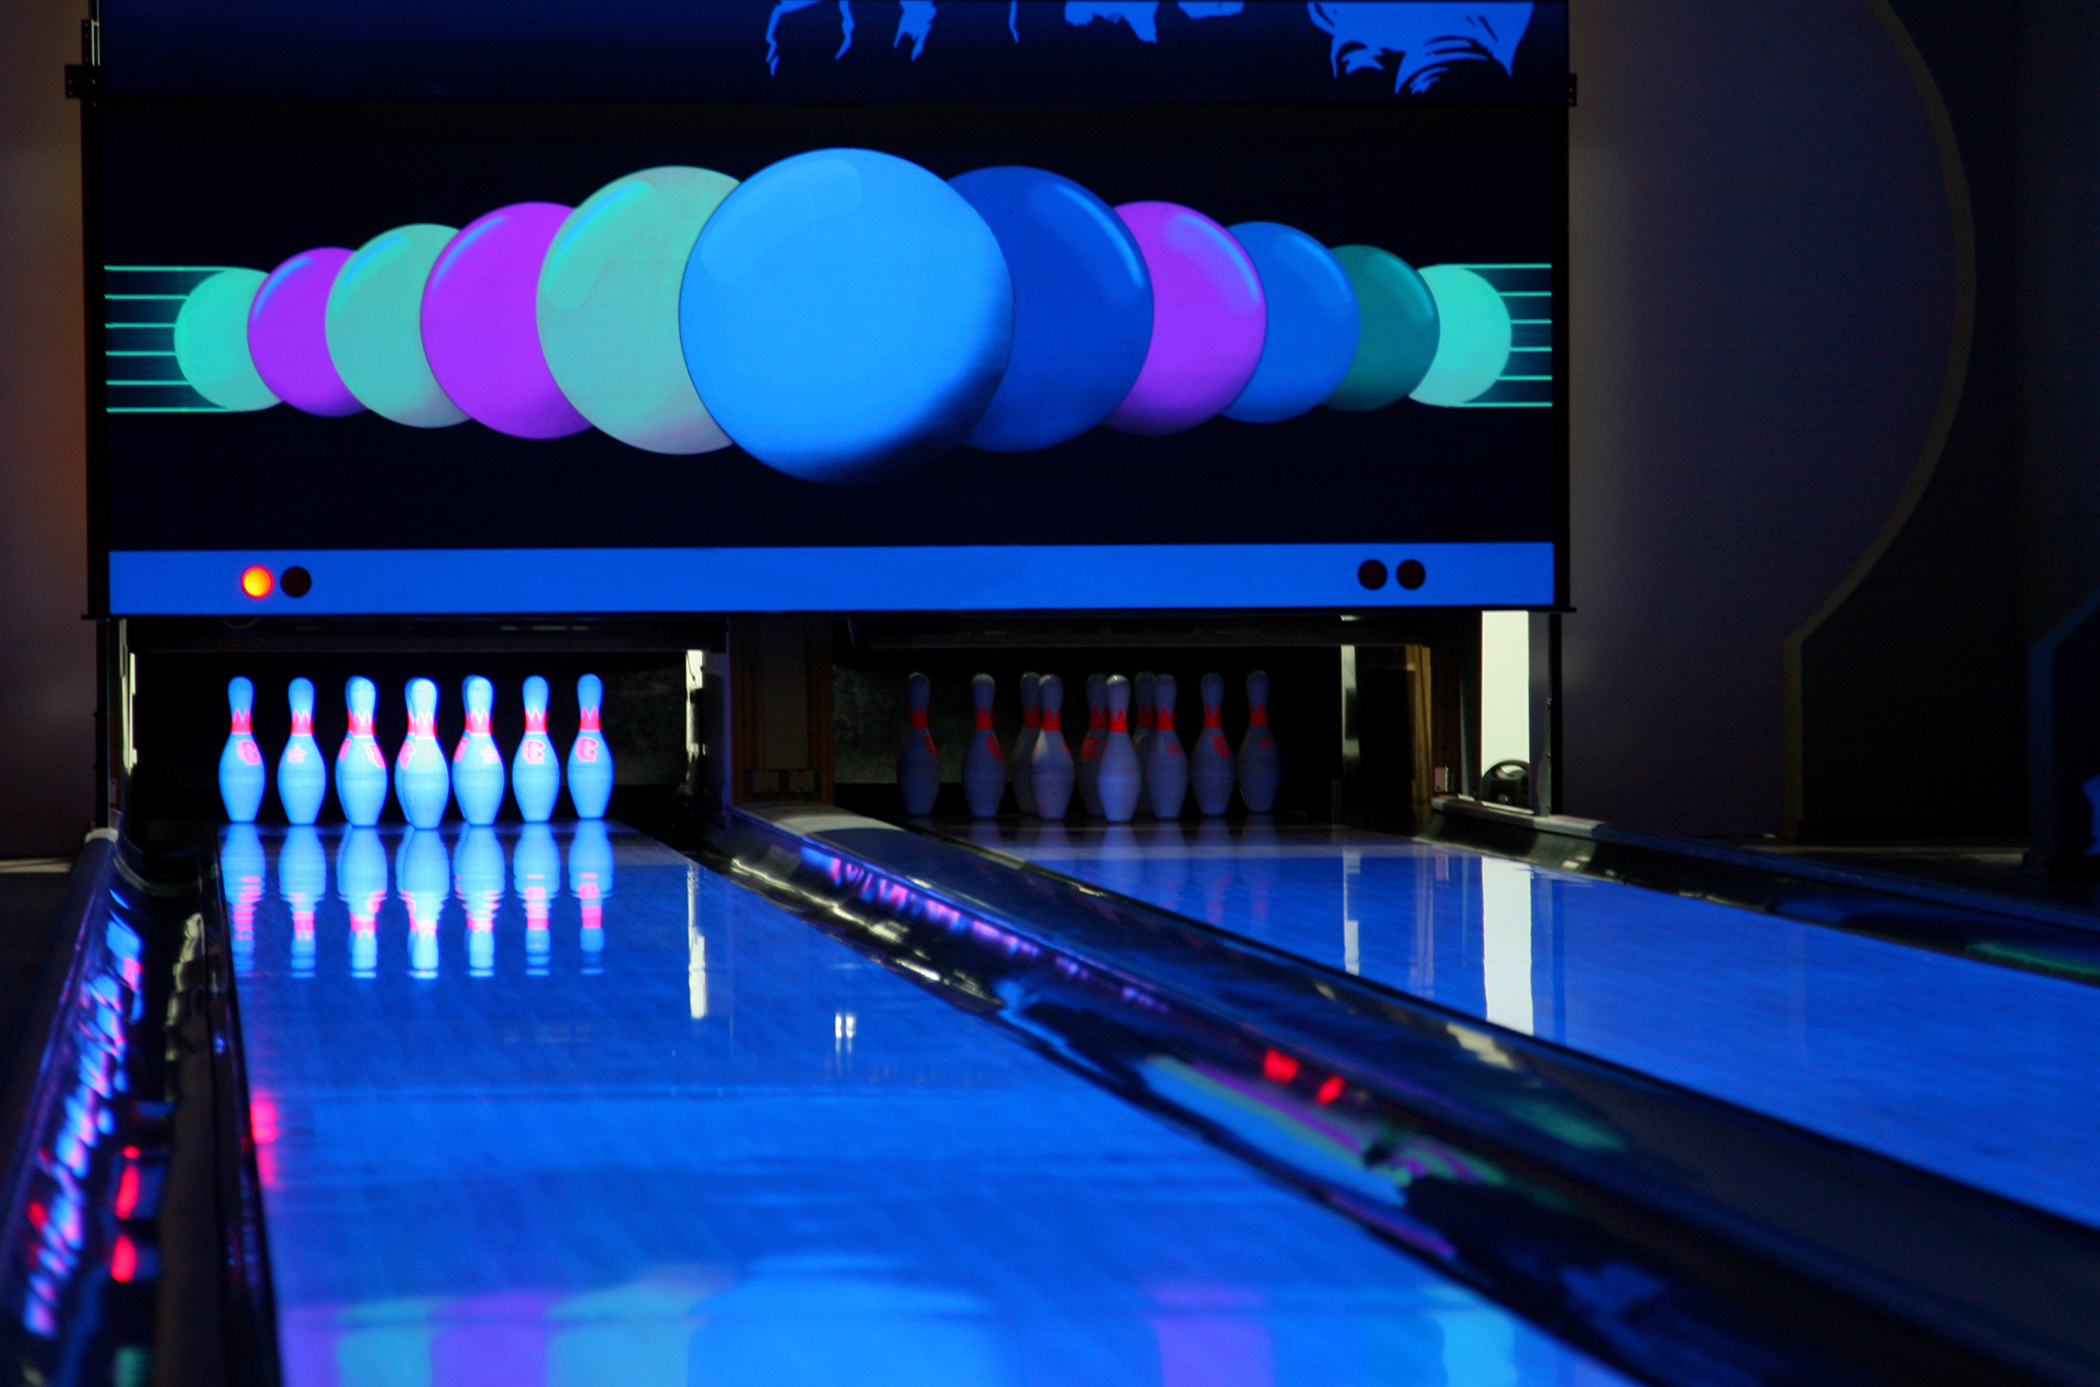 Bowling alley with neon lights